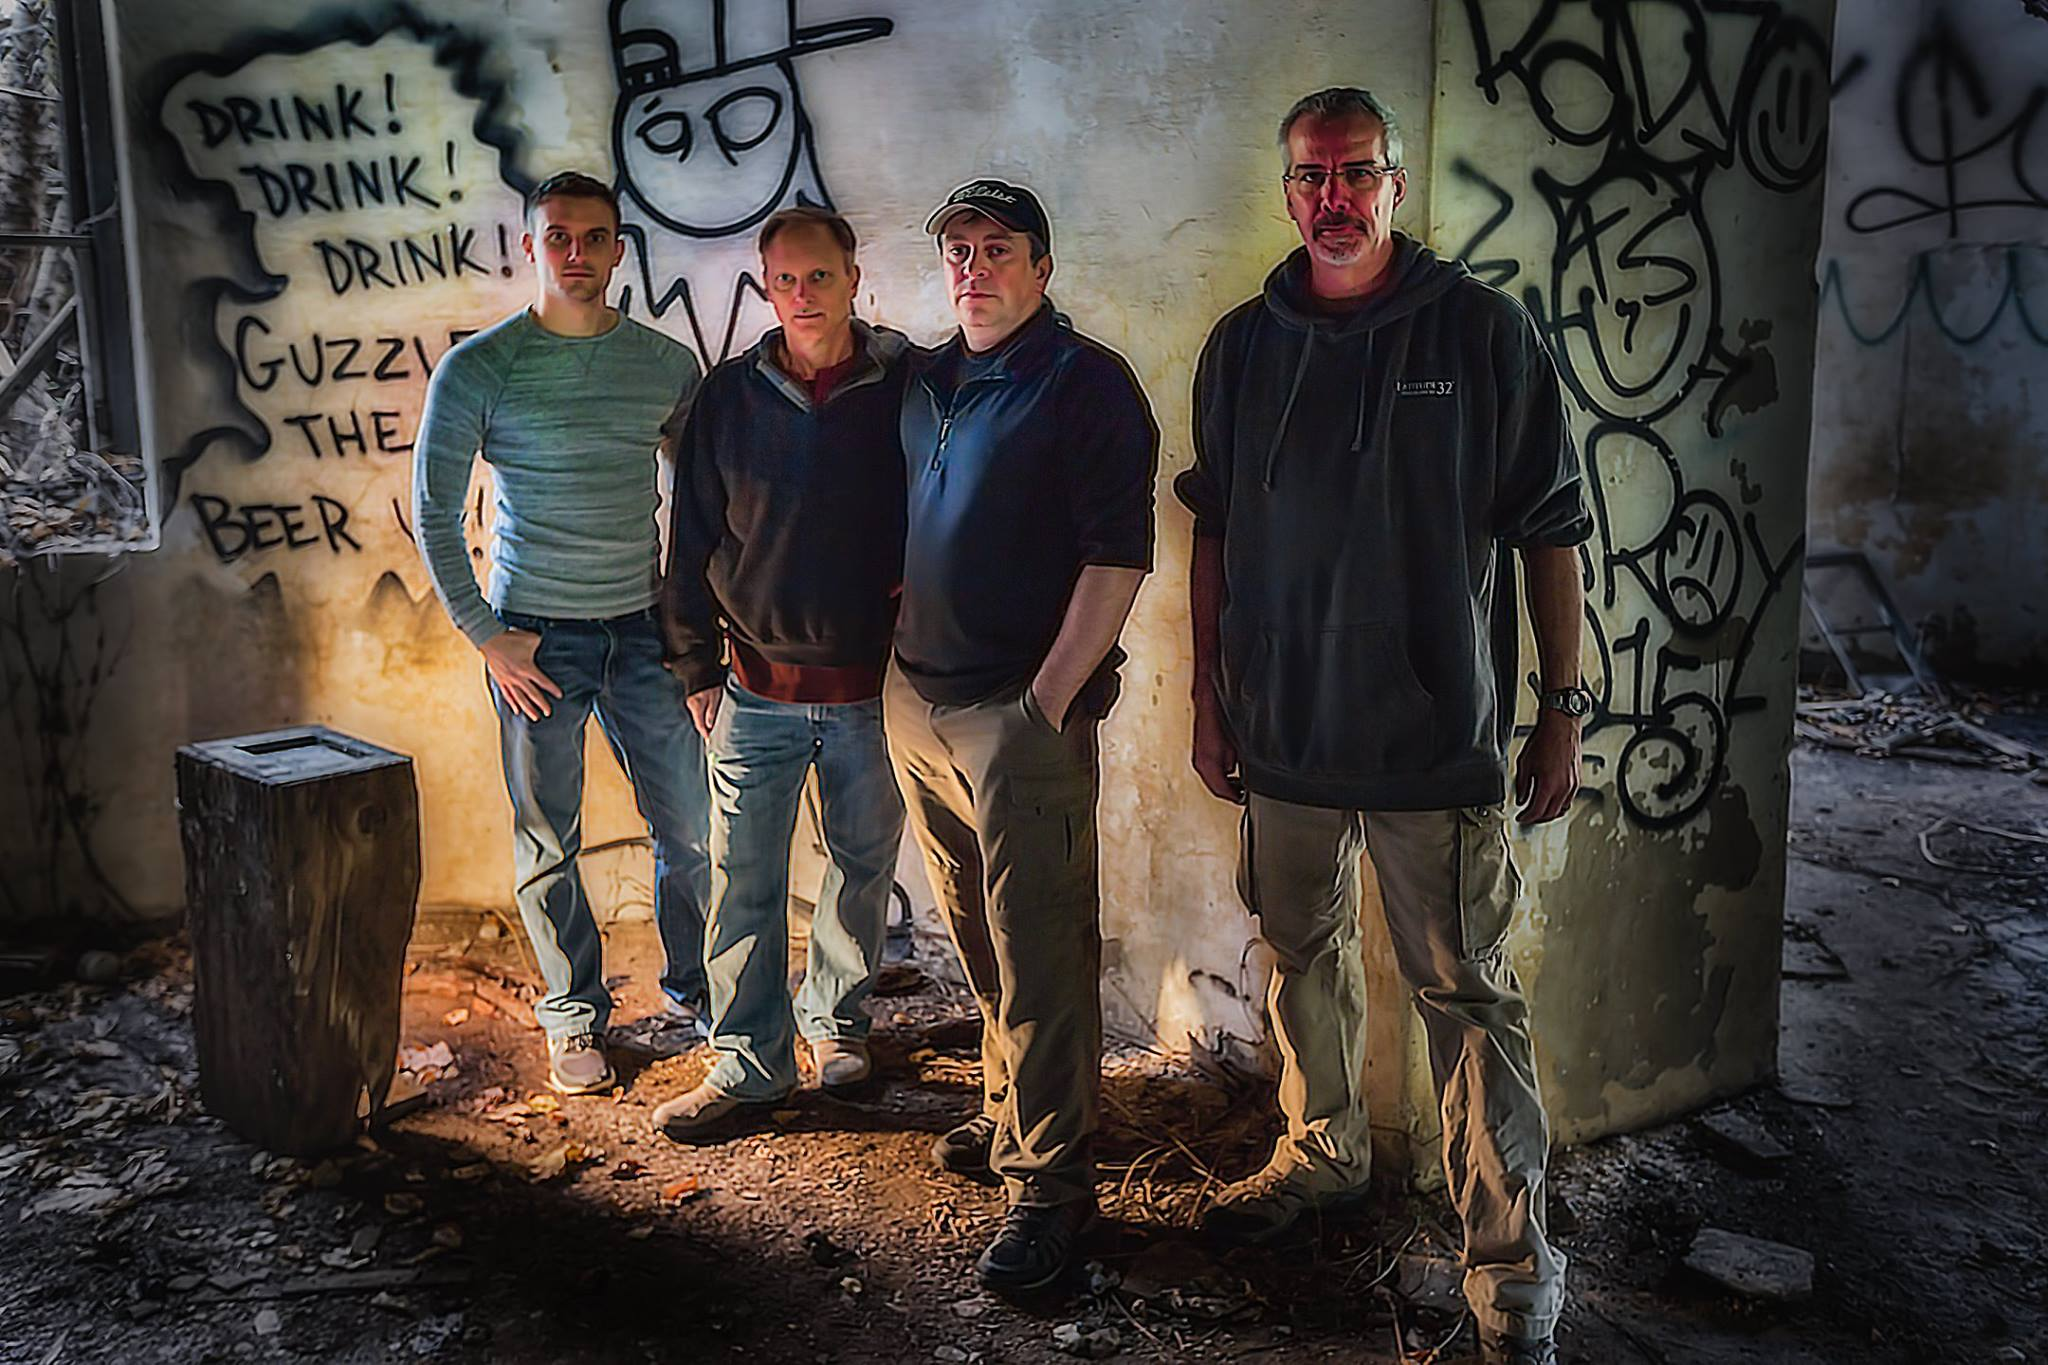 Urban Exploration Crew - photo by Dave Truxell